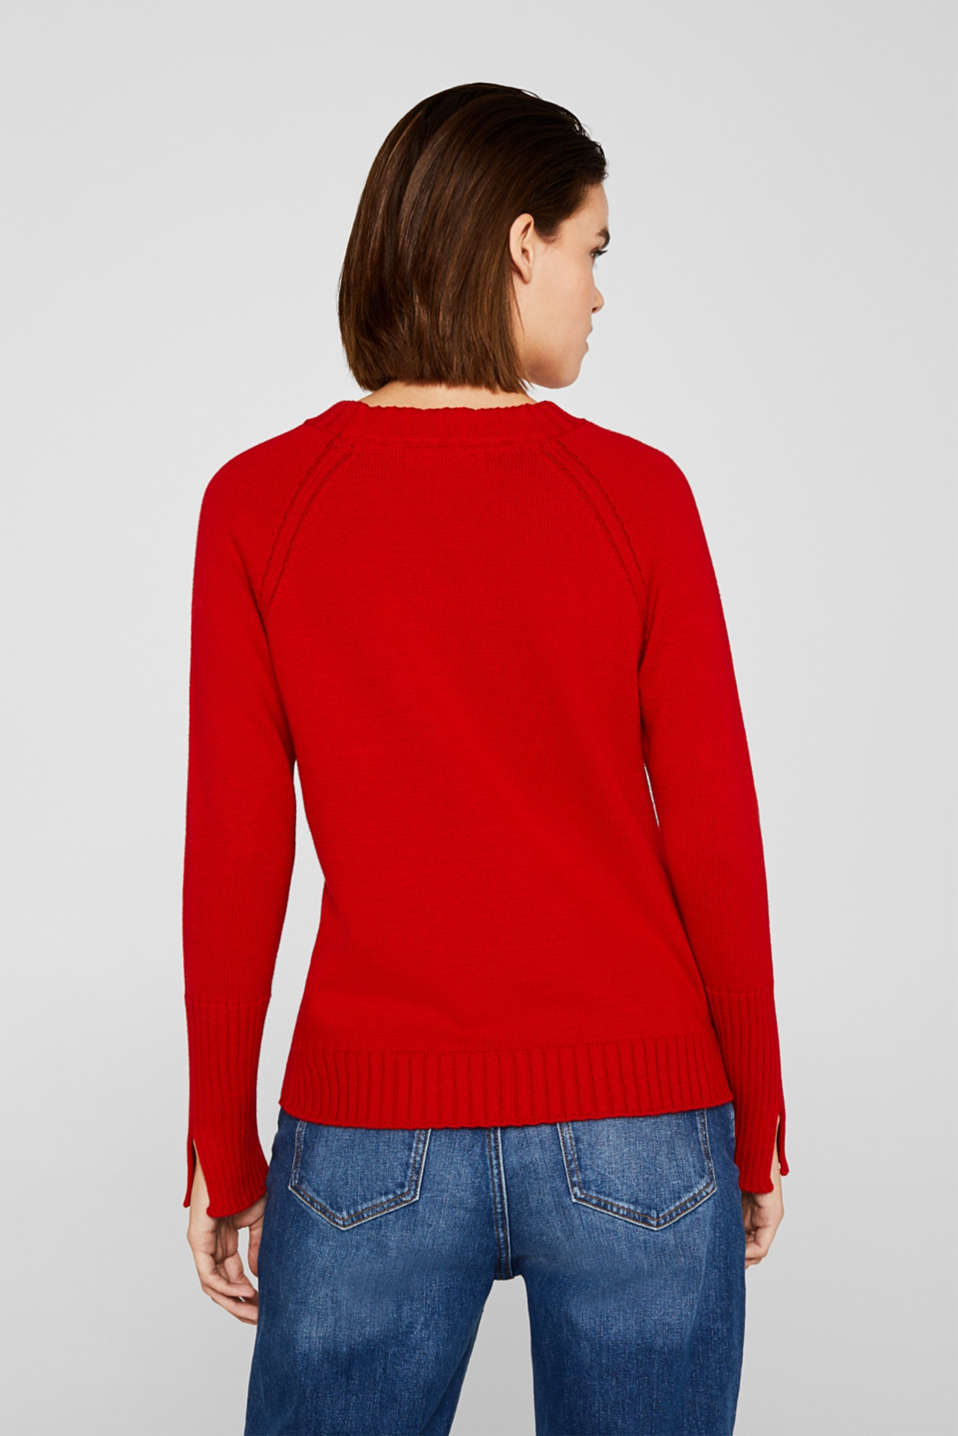 Jumper with ribbed borders, 100% cotton, DARK RED, detail image number 3